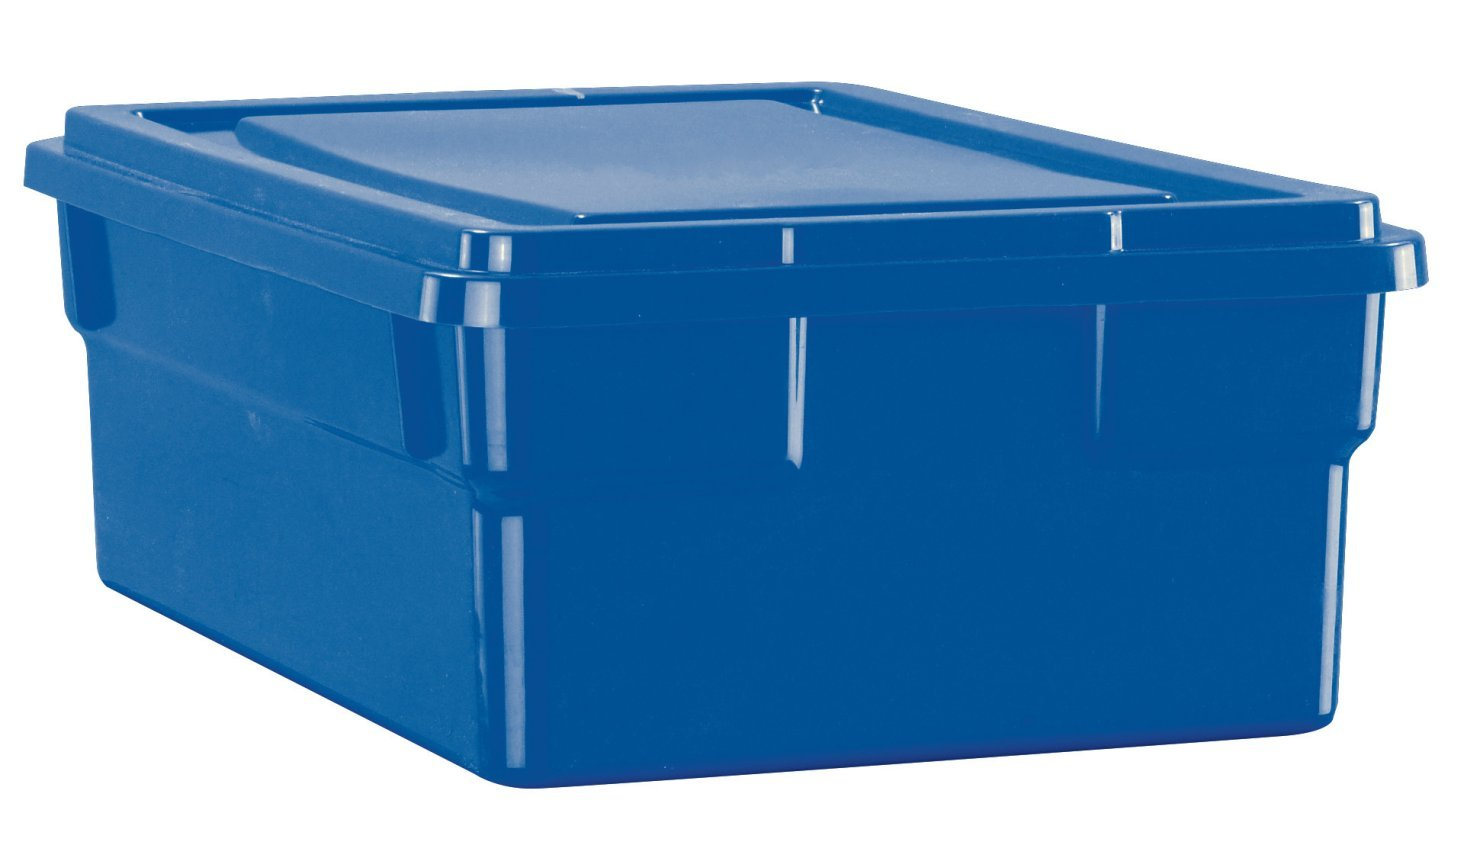 School Smart Storage Box with Lid, 11 x 6 x 16 Inches, Blue School Specialty 276841